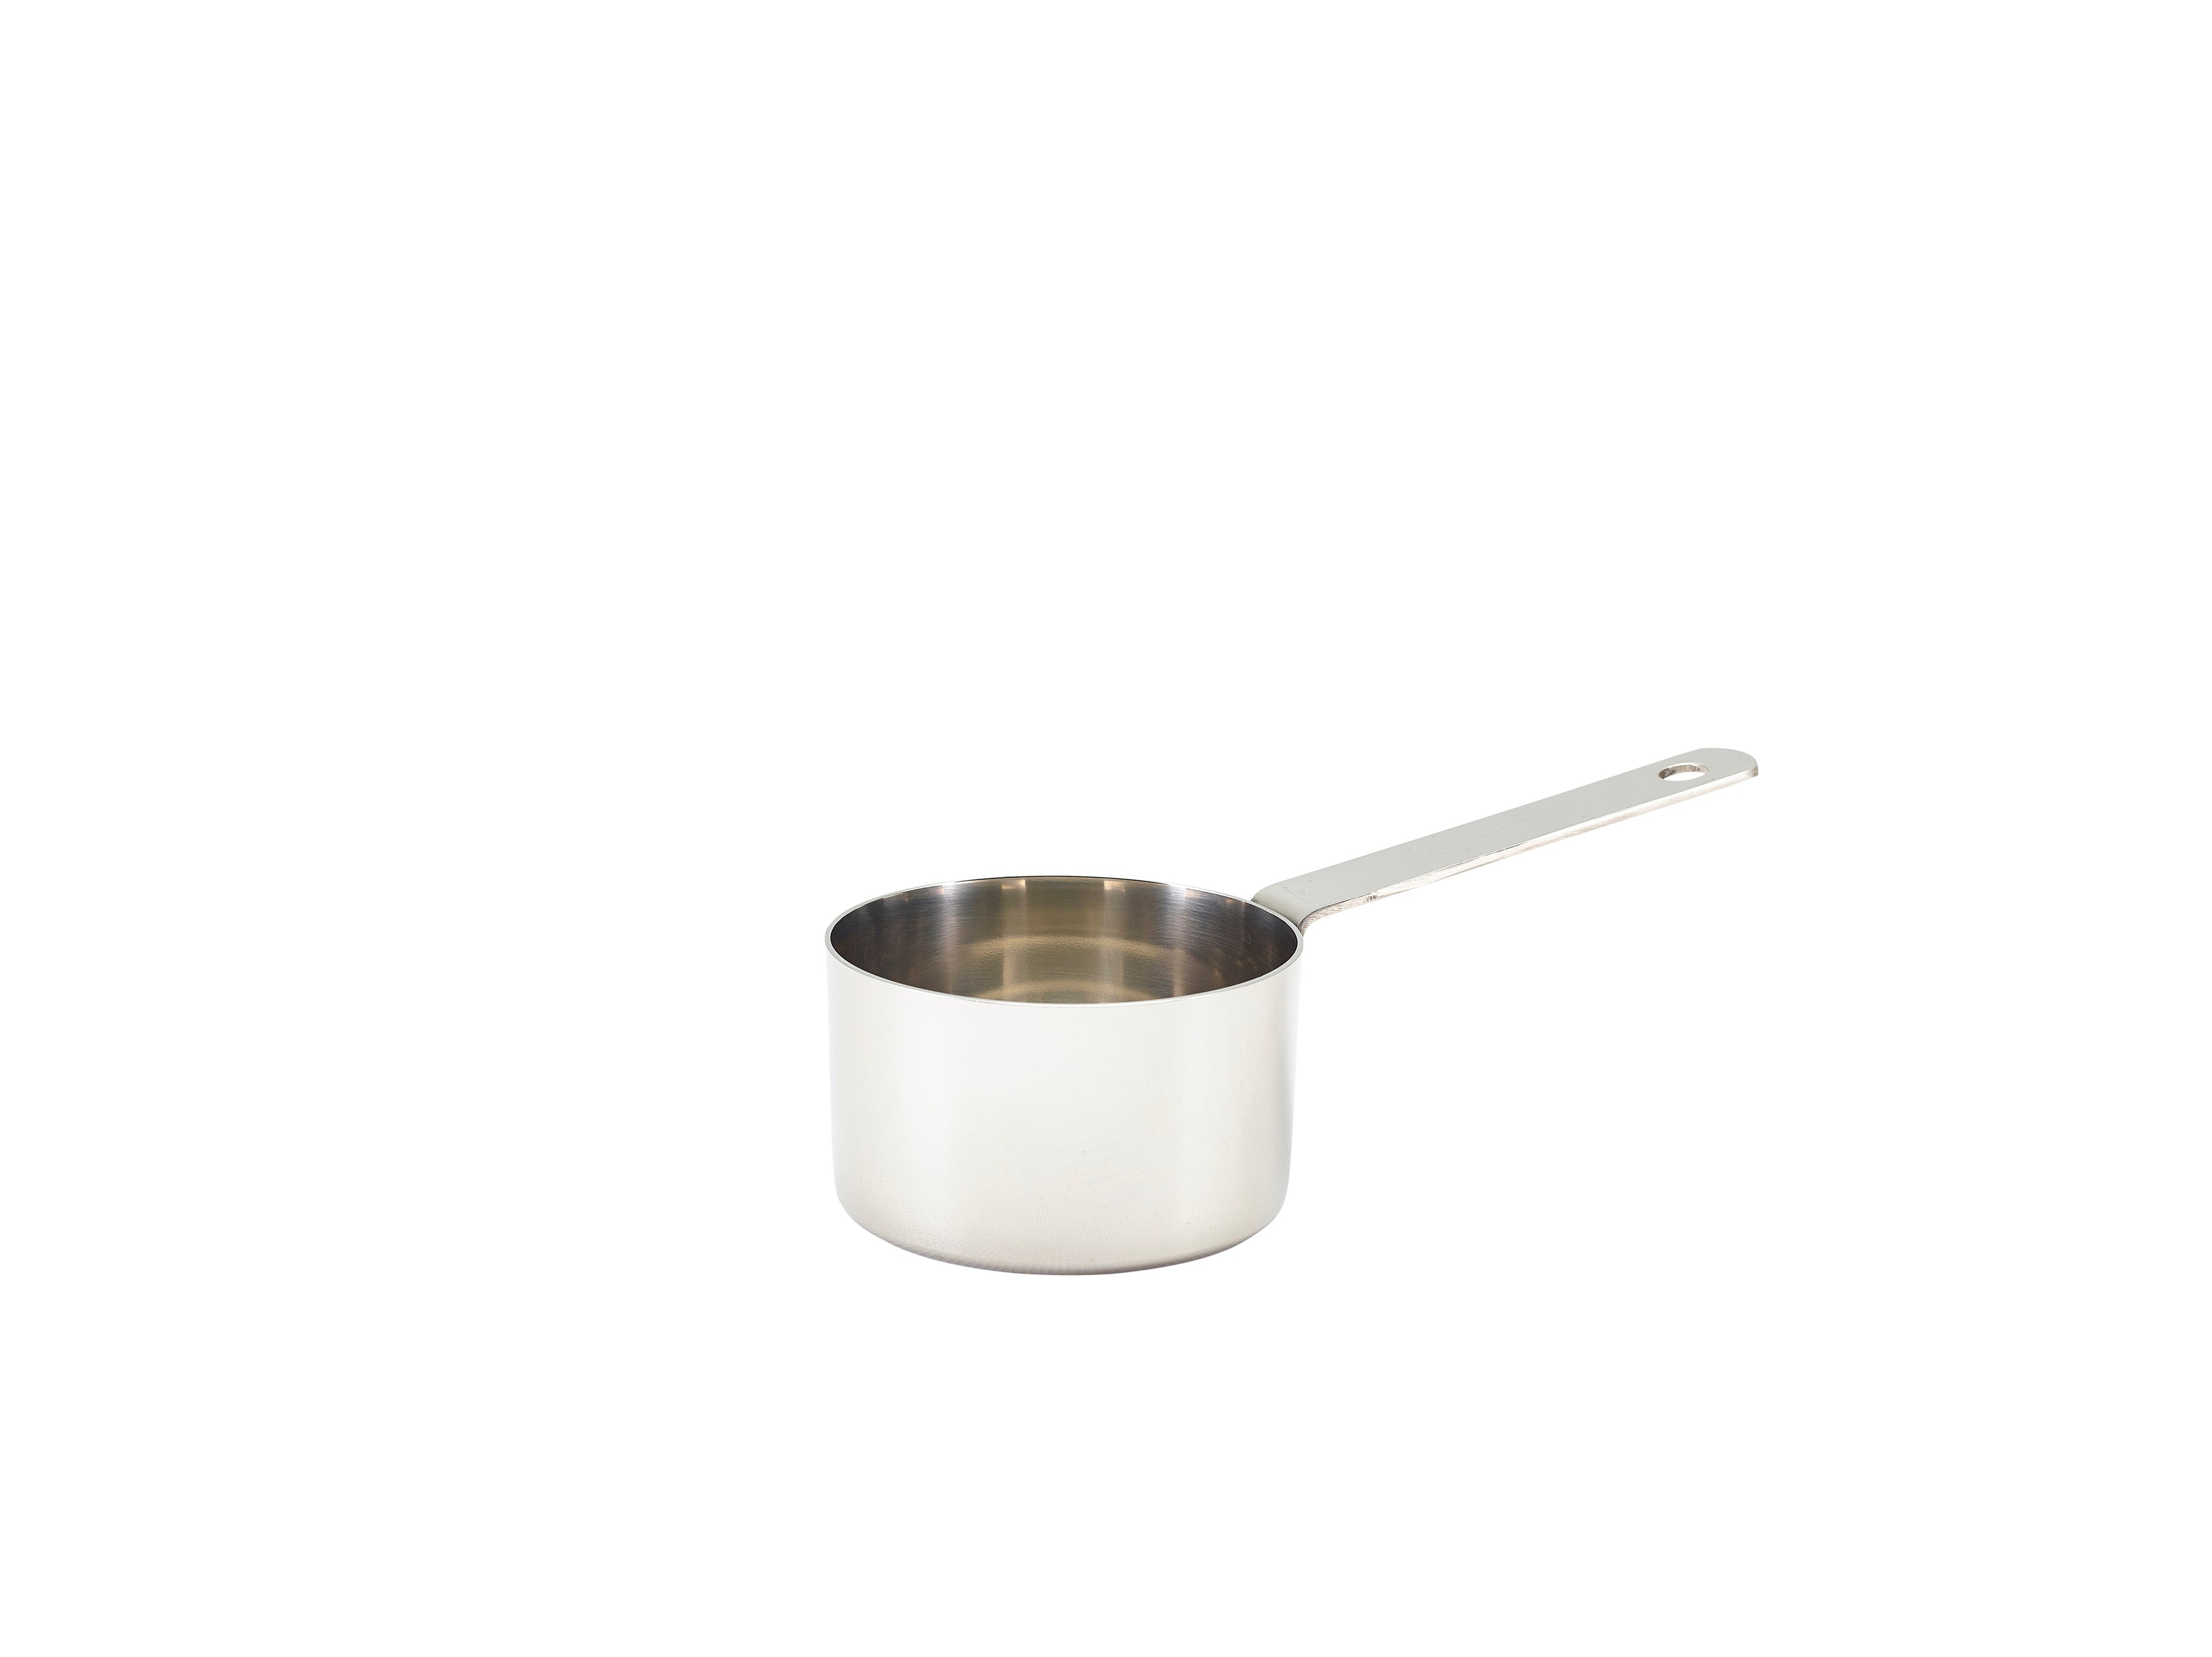 Mini Stainless Steel Saucepan 7.2 x 4.7cm 6 pack